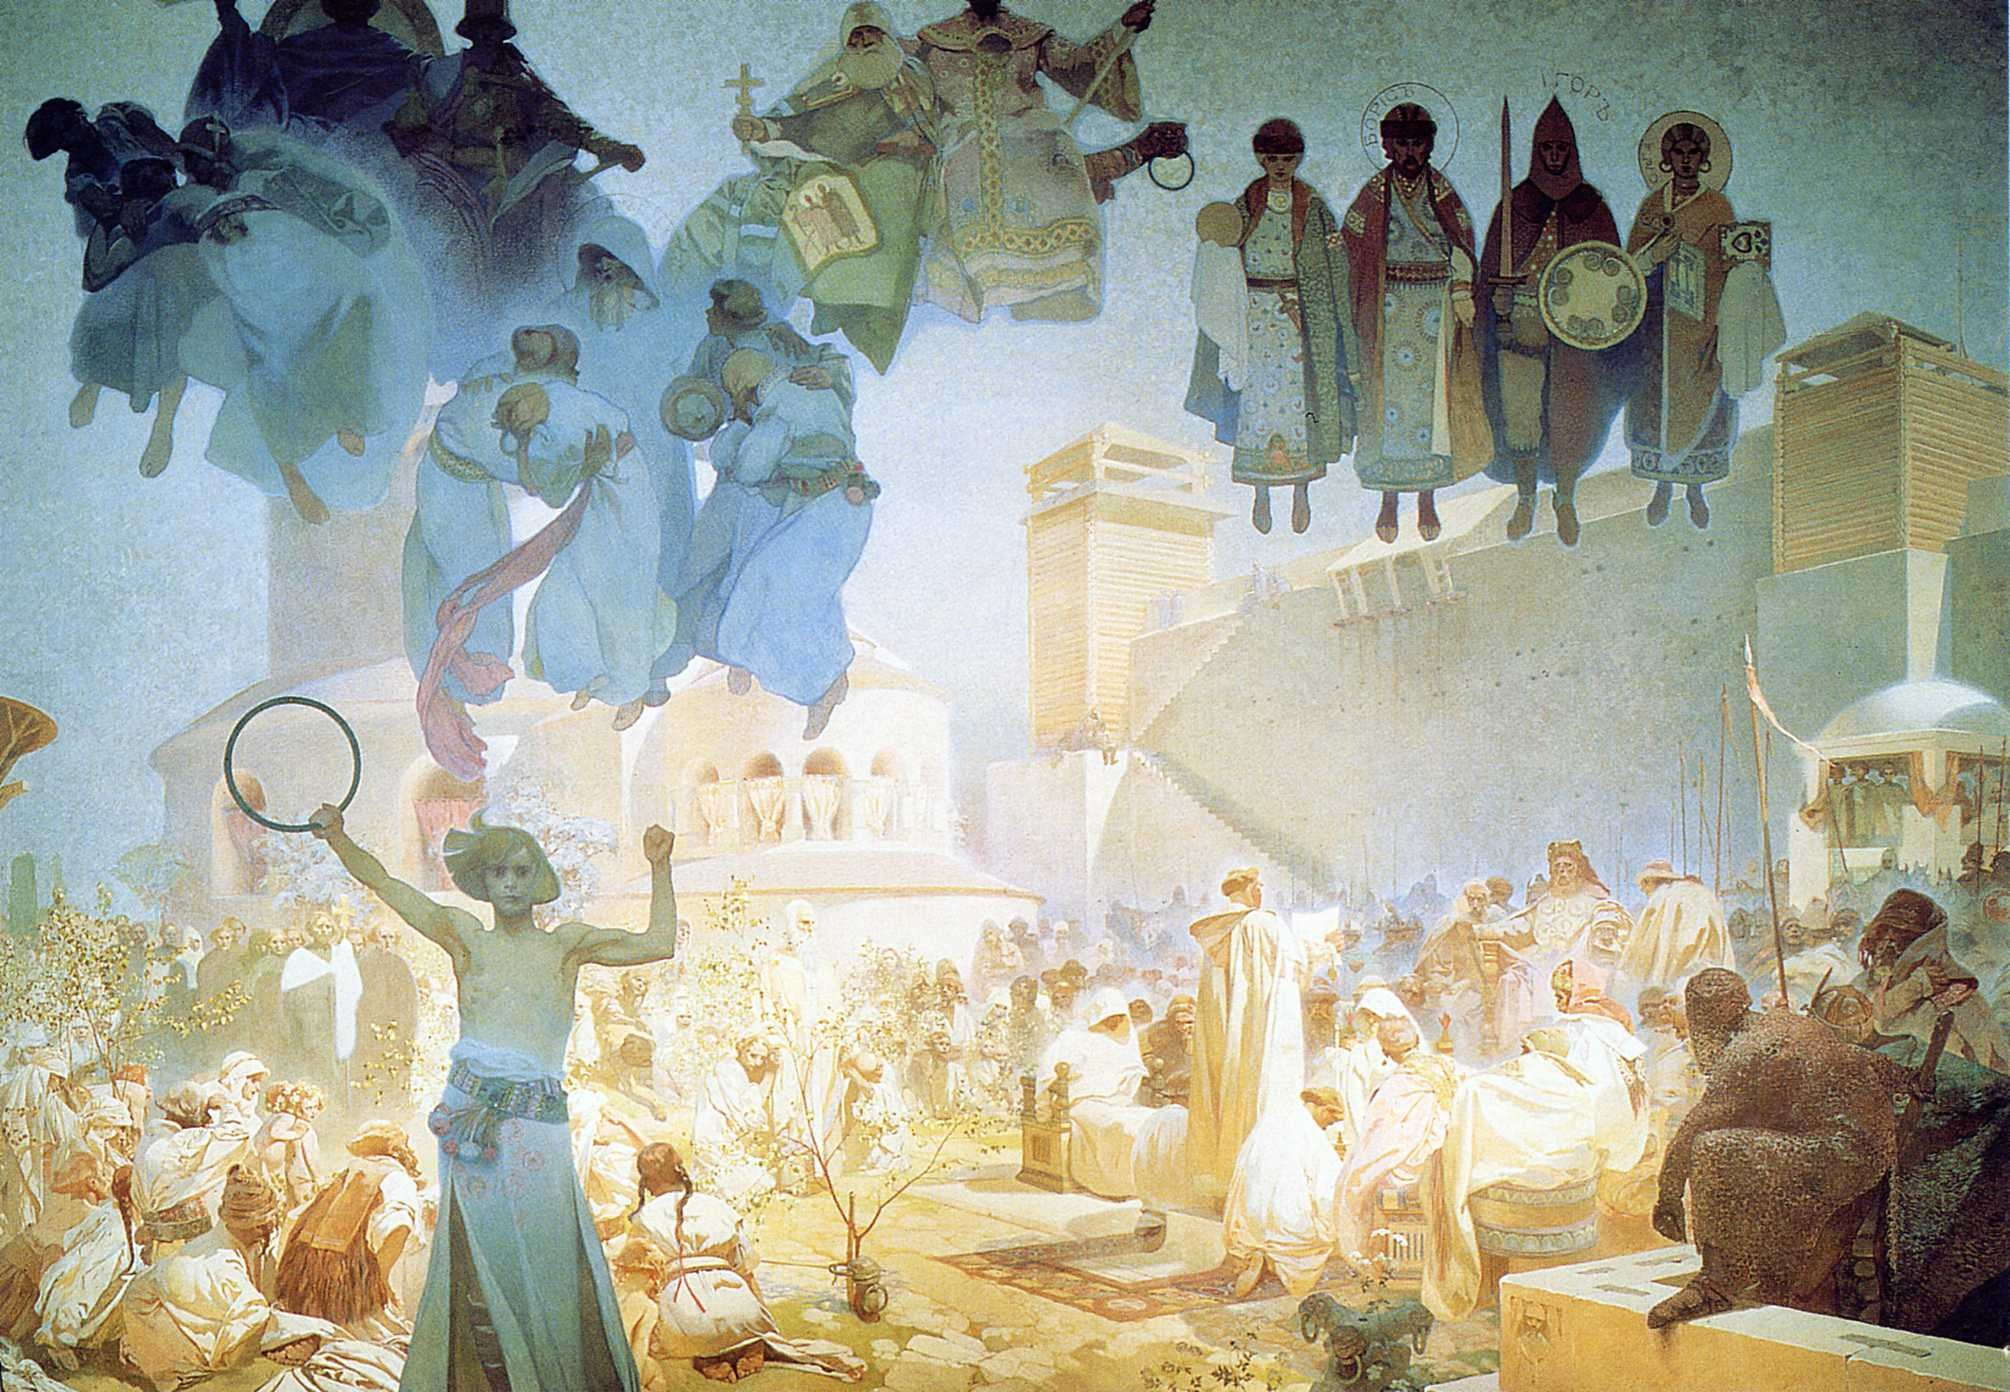 2010x1392 The Introduction of the Slavonic Liturgy, 1912 - Alphonse Mucha